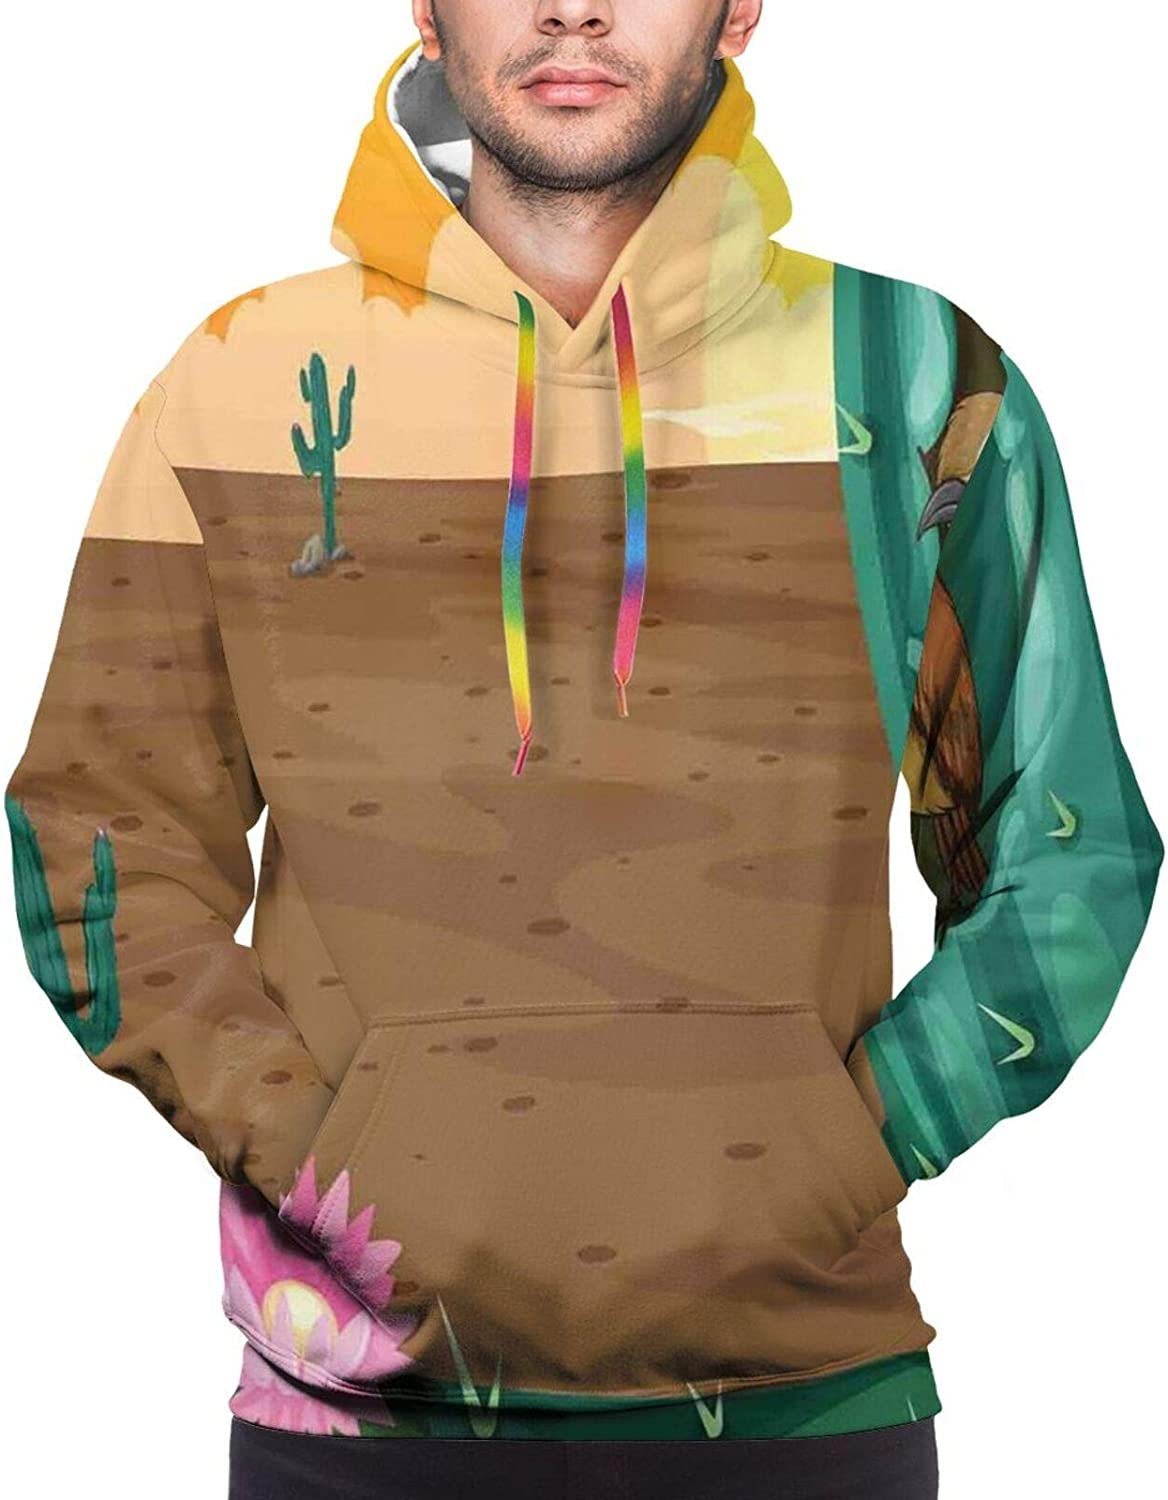 Men's Hoodies Sweatshirts,Denim Style Pattern with Hearts and Geometric Motifs On Stripes Background